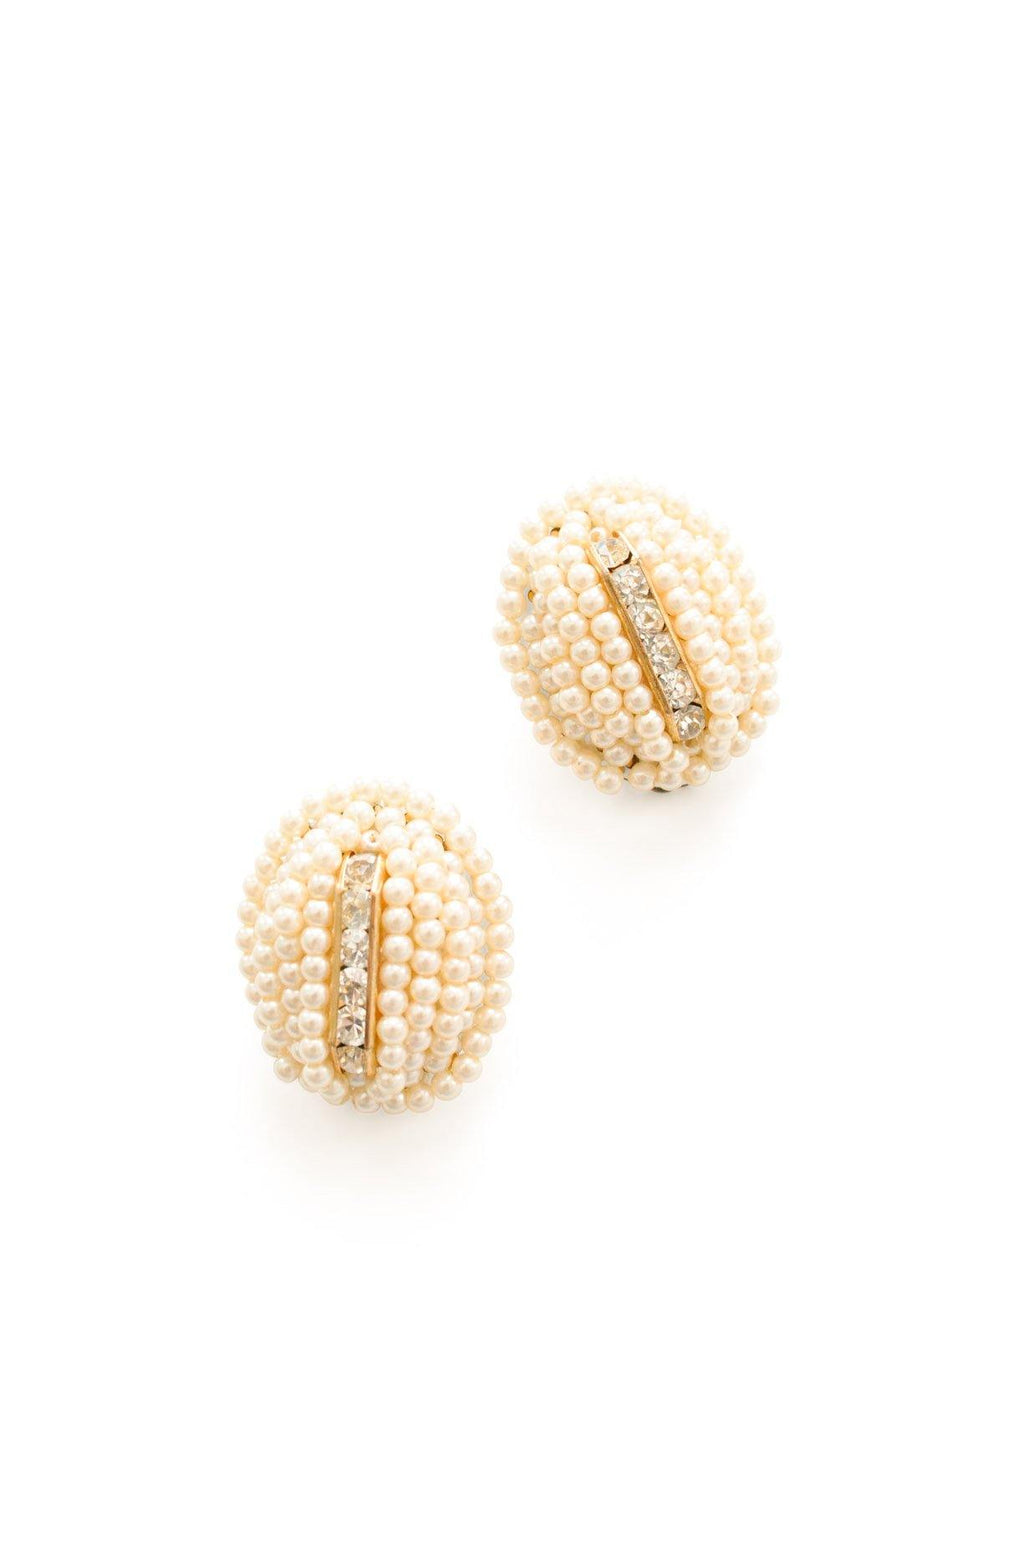 Pearl Rhinestone Clip-on Earrings